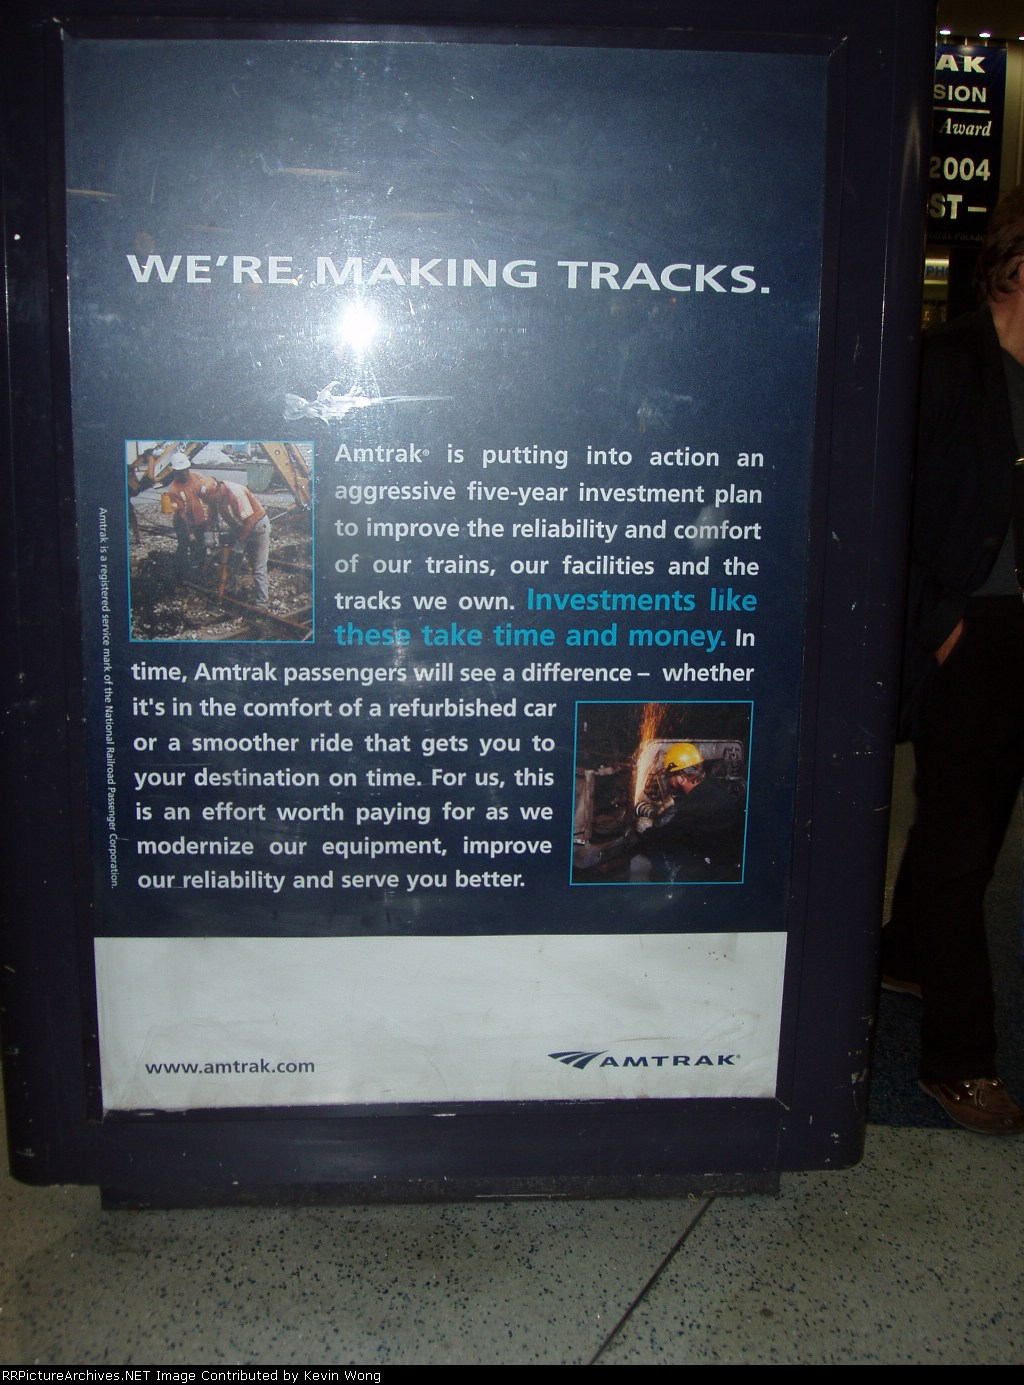 Making tracks poster in Penn Station